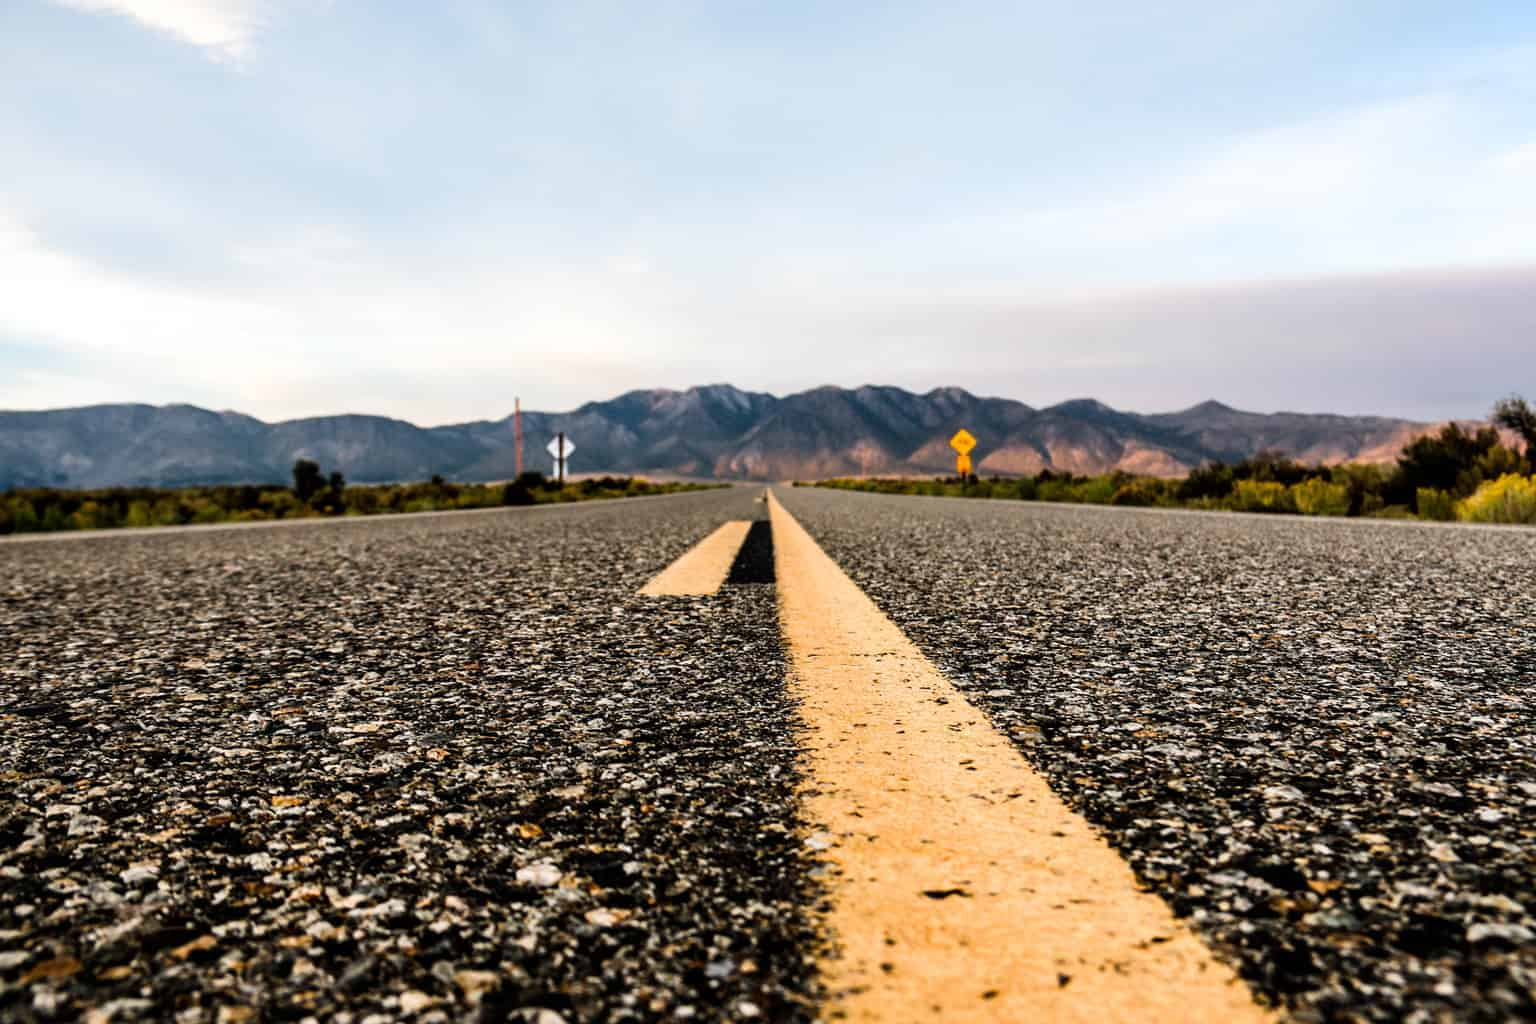 Forced perspective photography of a never-ending road